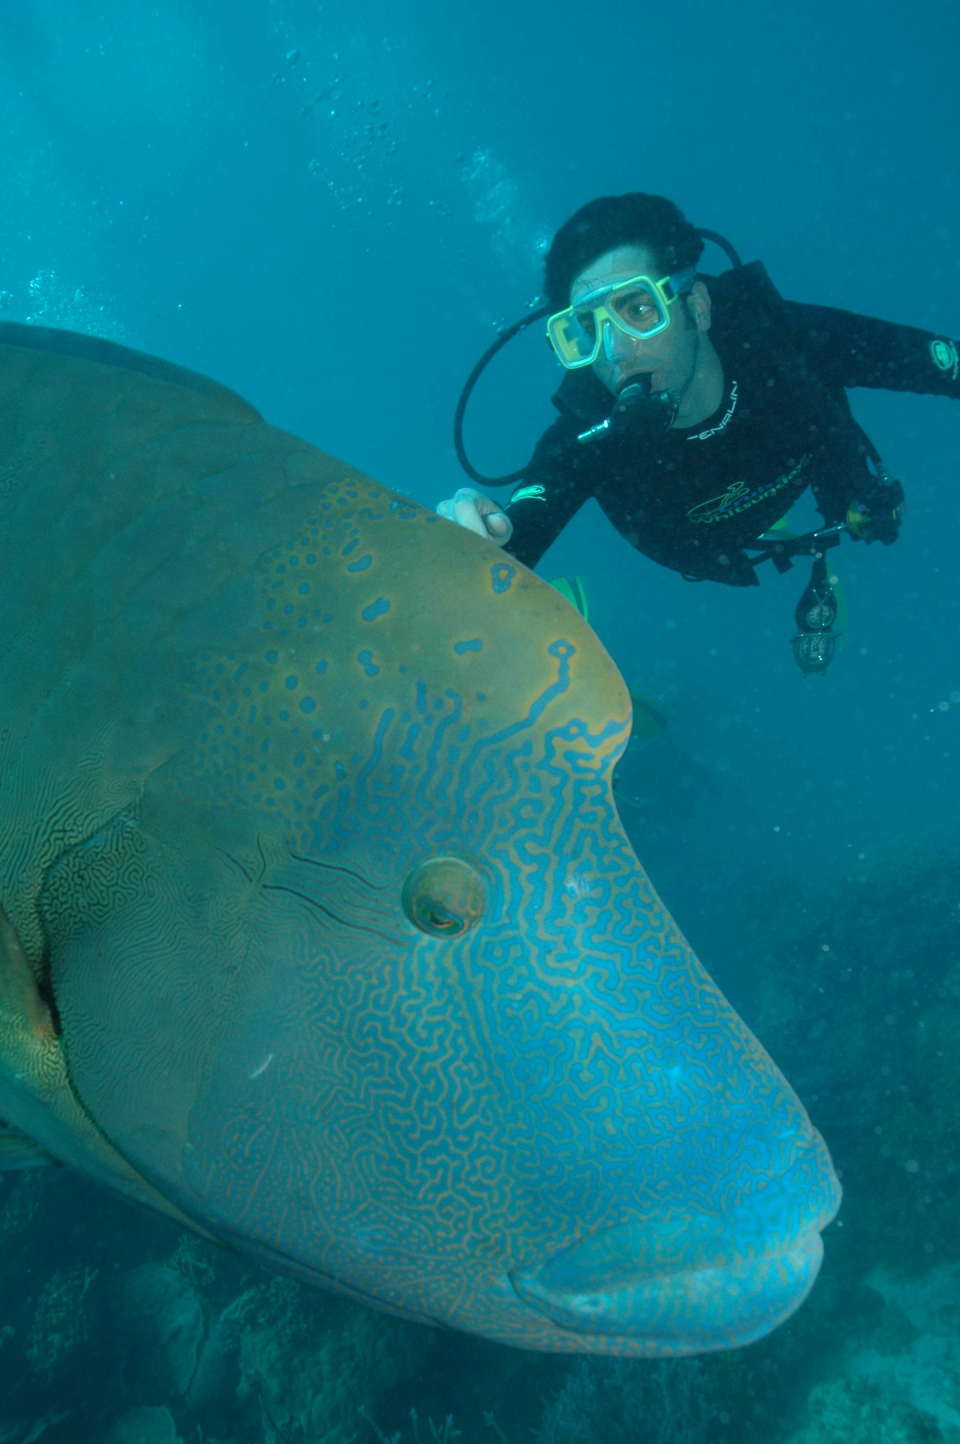 Scuba diving on the Great Barrier Reef, Australia, 2008